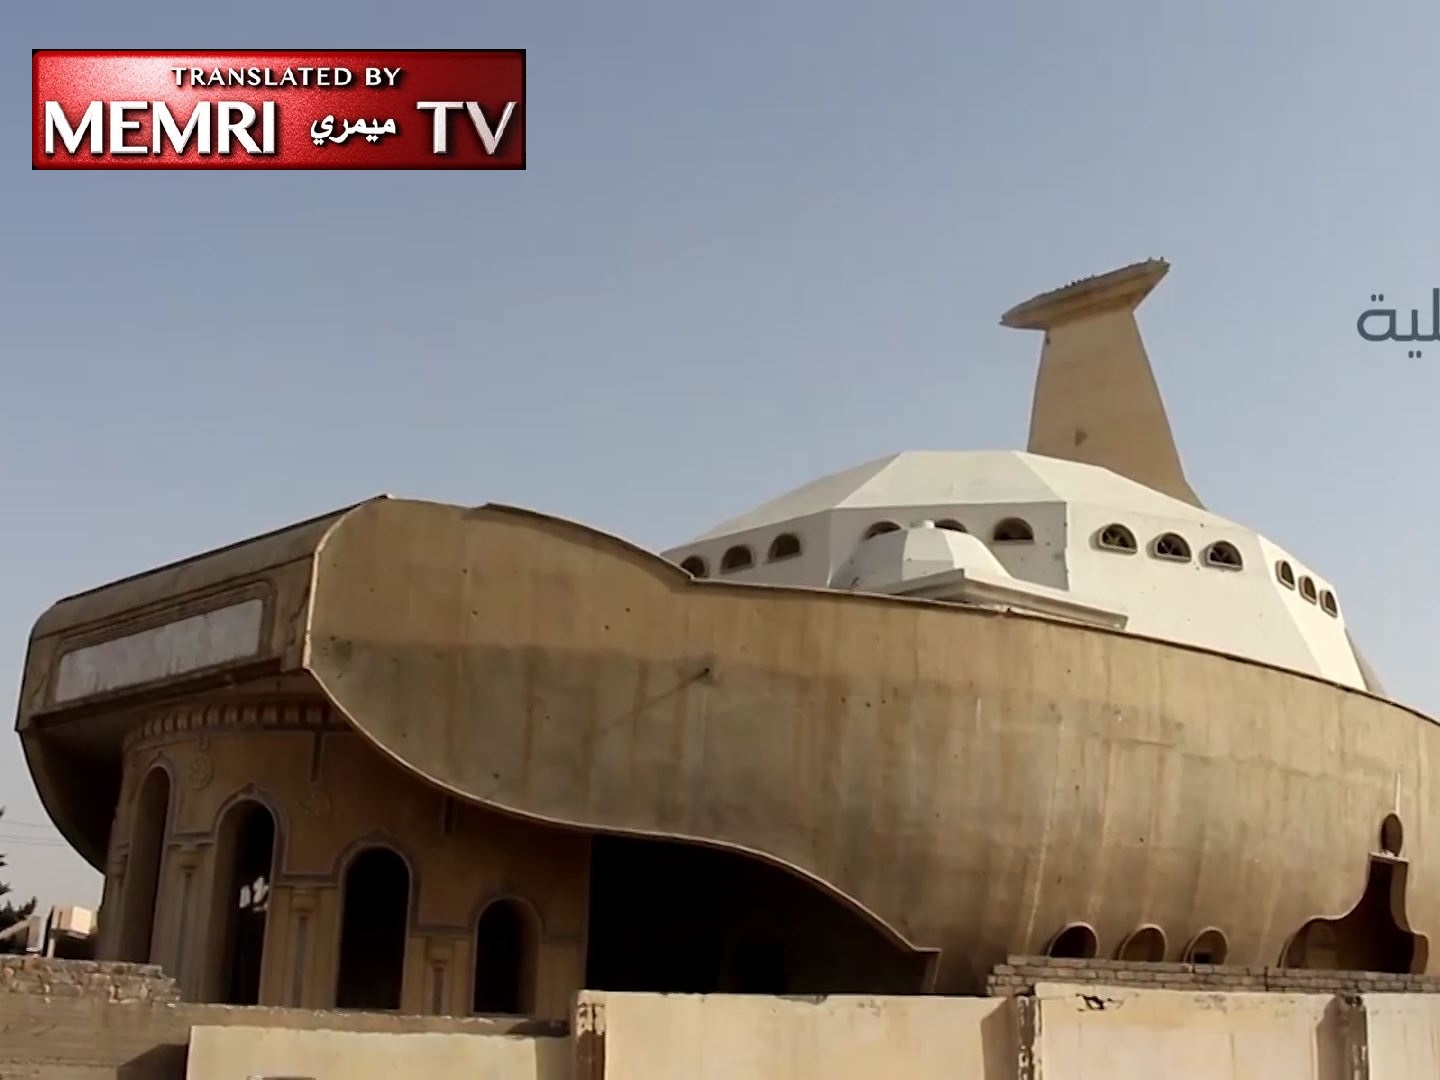 Local Authorities Vow to Rebuild Ship-Shaped Church Destroyed by ISIS in Mosul, Iraq